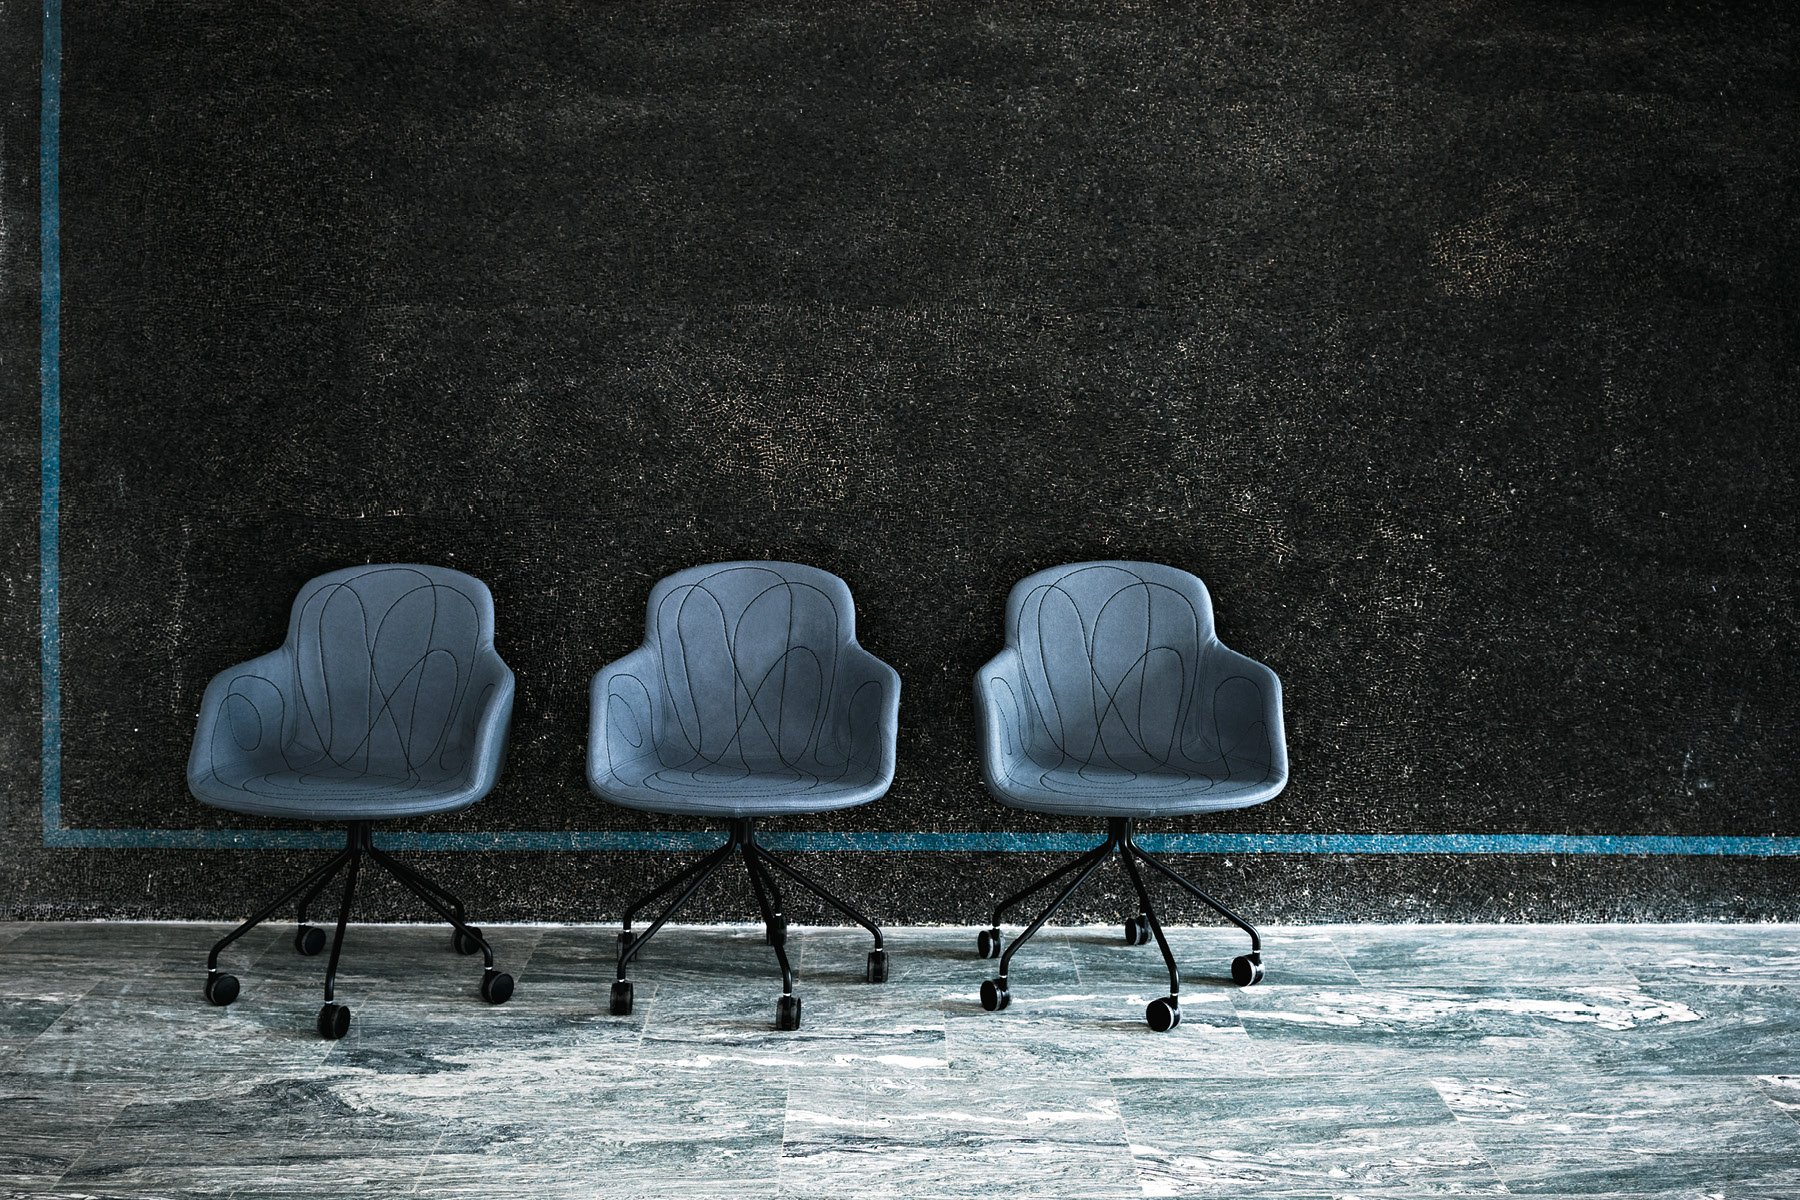 Doodle Armchair from Tacchini, designed by Claesson Koivisto Rune